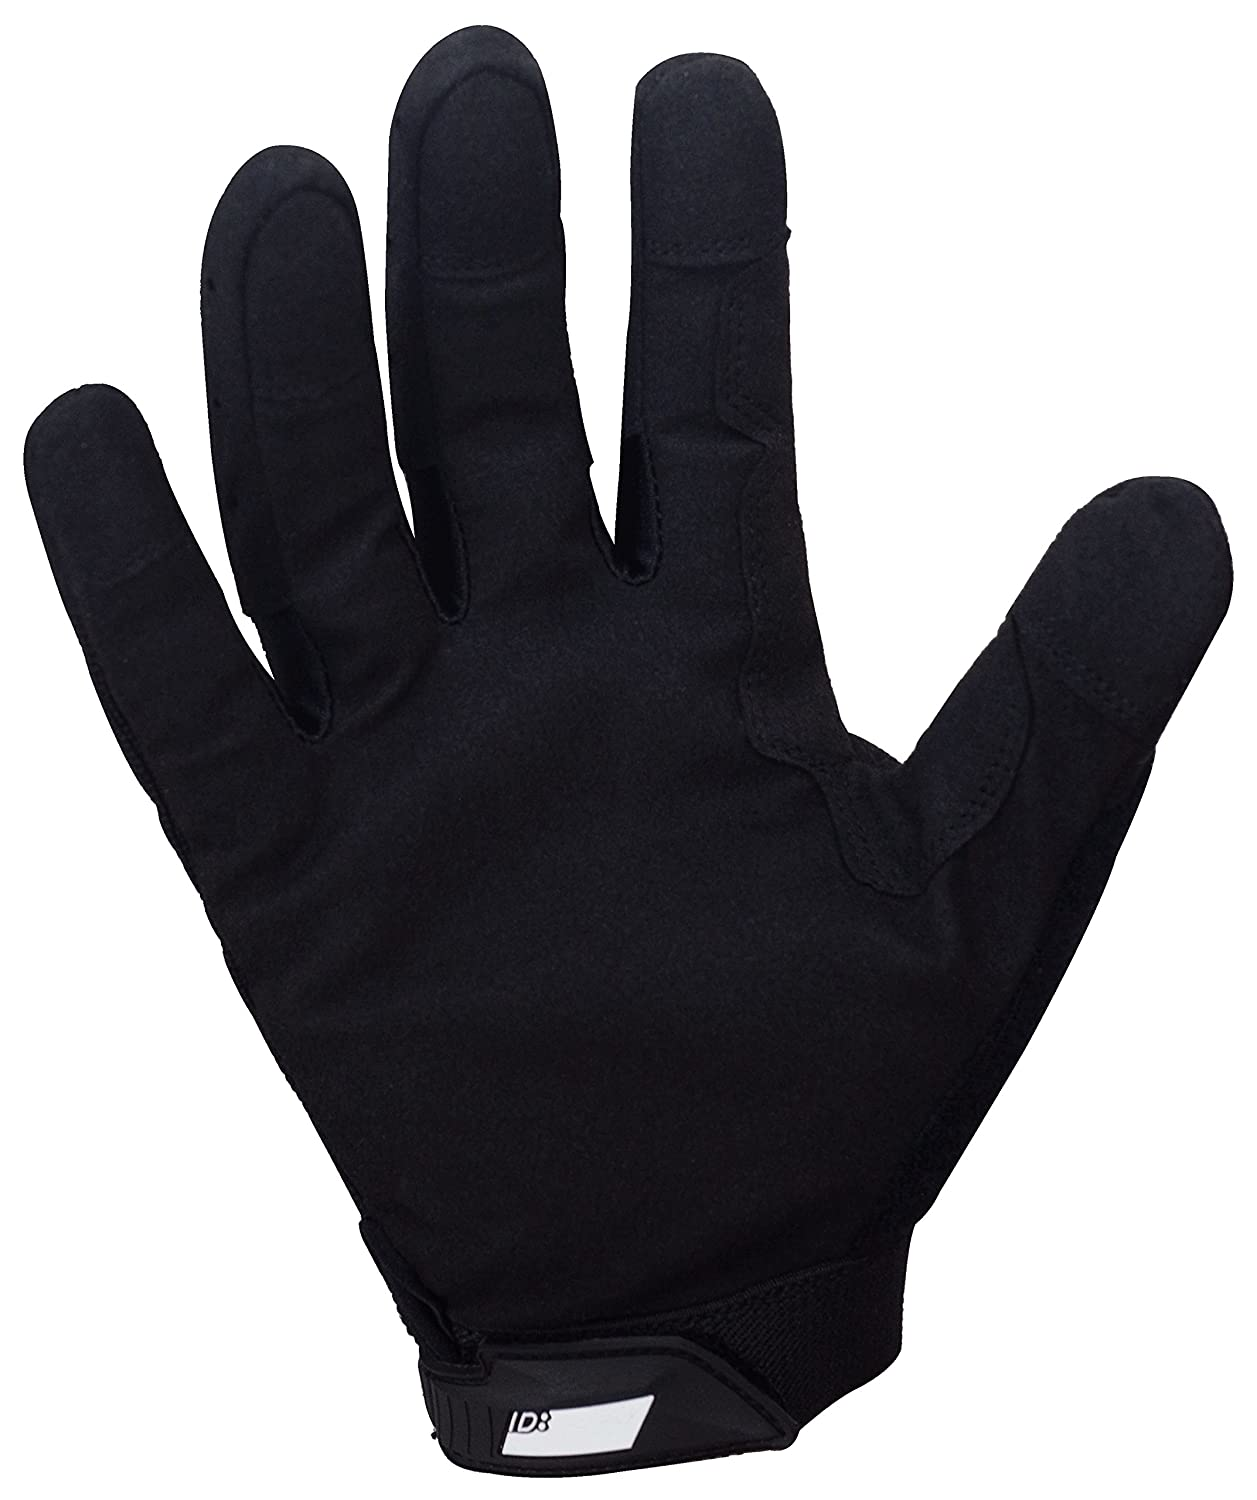 Seibertron Original Multifunction Mechanic Touchscreen Safety Work Gloves Fit For Working On Cars,Driving,Gardening Mechanics and Outdoor Sports Protect Fingers And Hands Black XL